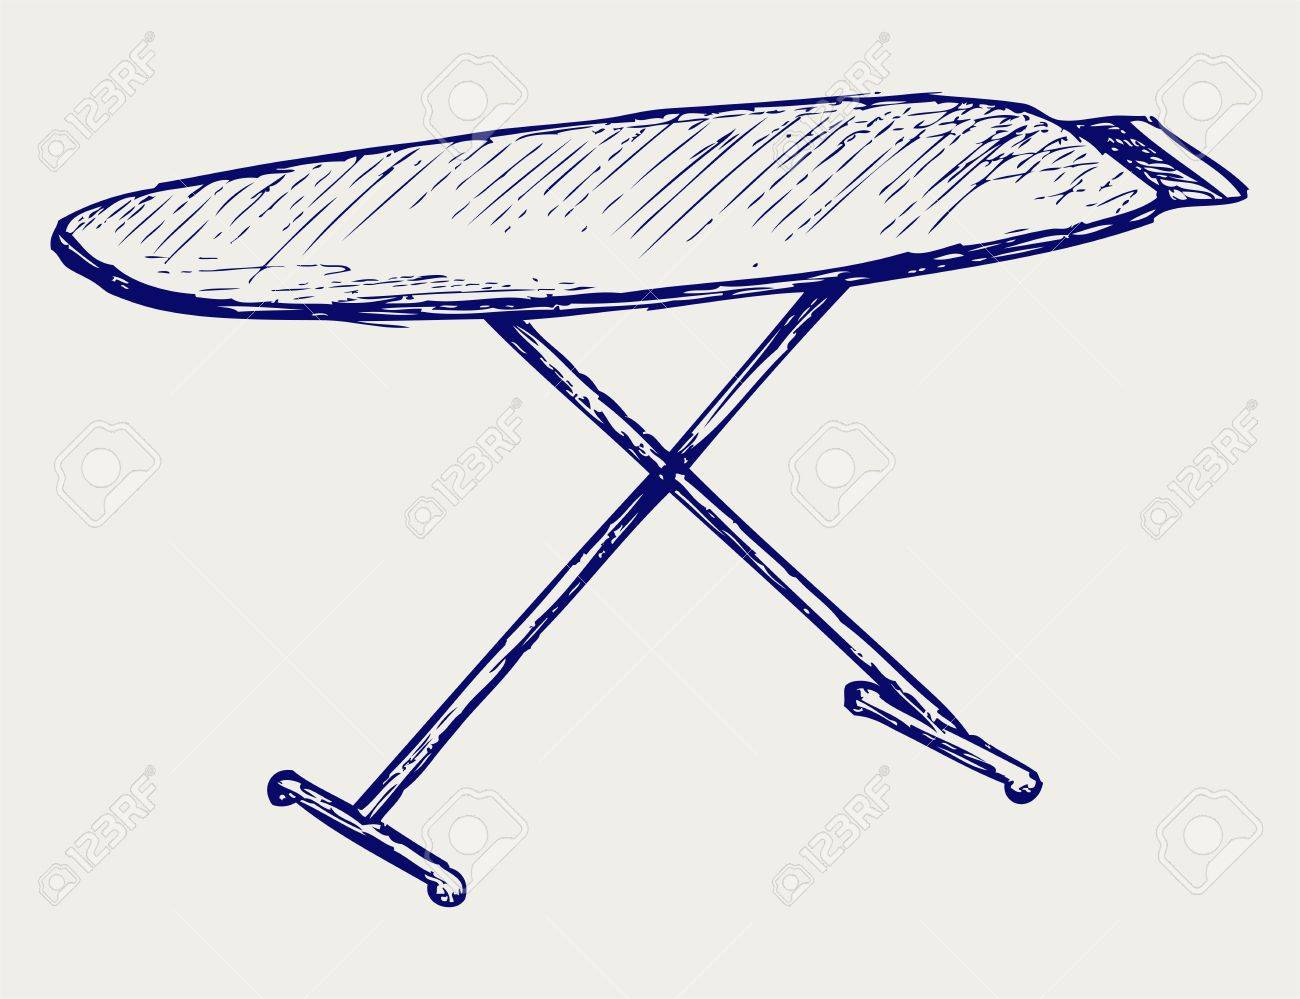 Ironing Board Doodle Style Royalty Free Cliparts Vectors And Clip Art Image Simple Drawing Of A Circuit Stock Vector 17057362